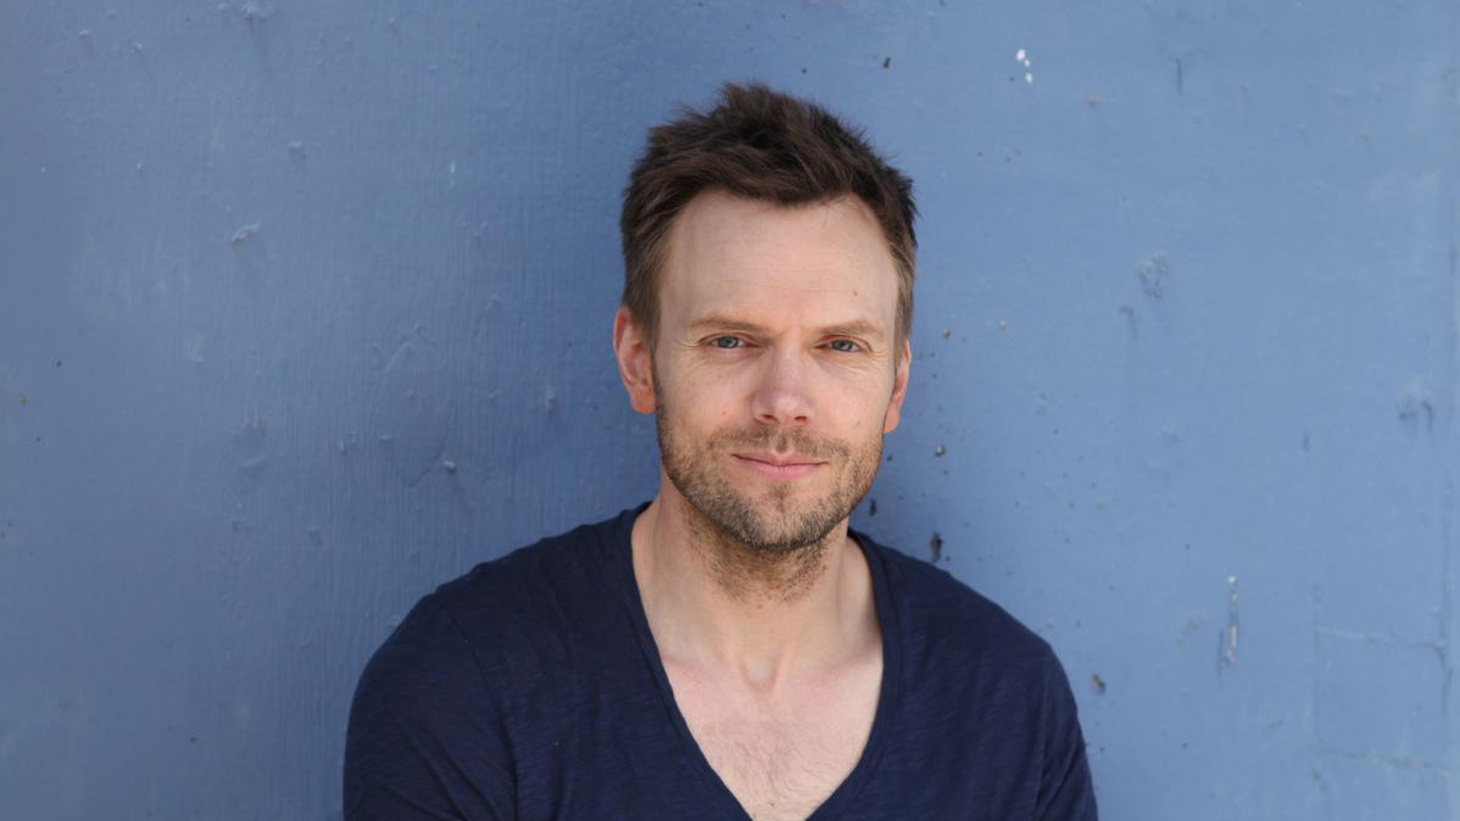 """Elvis Mitchell talks to actor Joel McHale, who stars in the NBC comedy """"Community"""" and hosts """"The Soup"""" on E! Entertainment Television."""